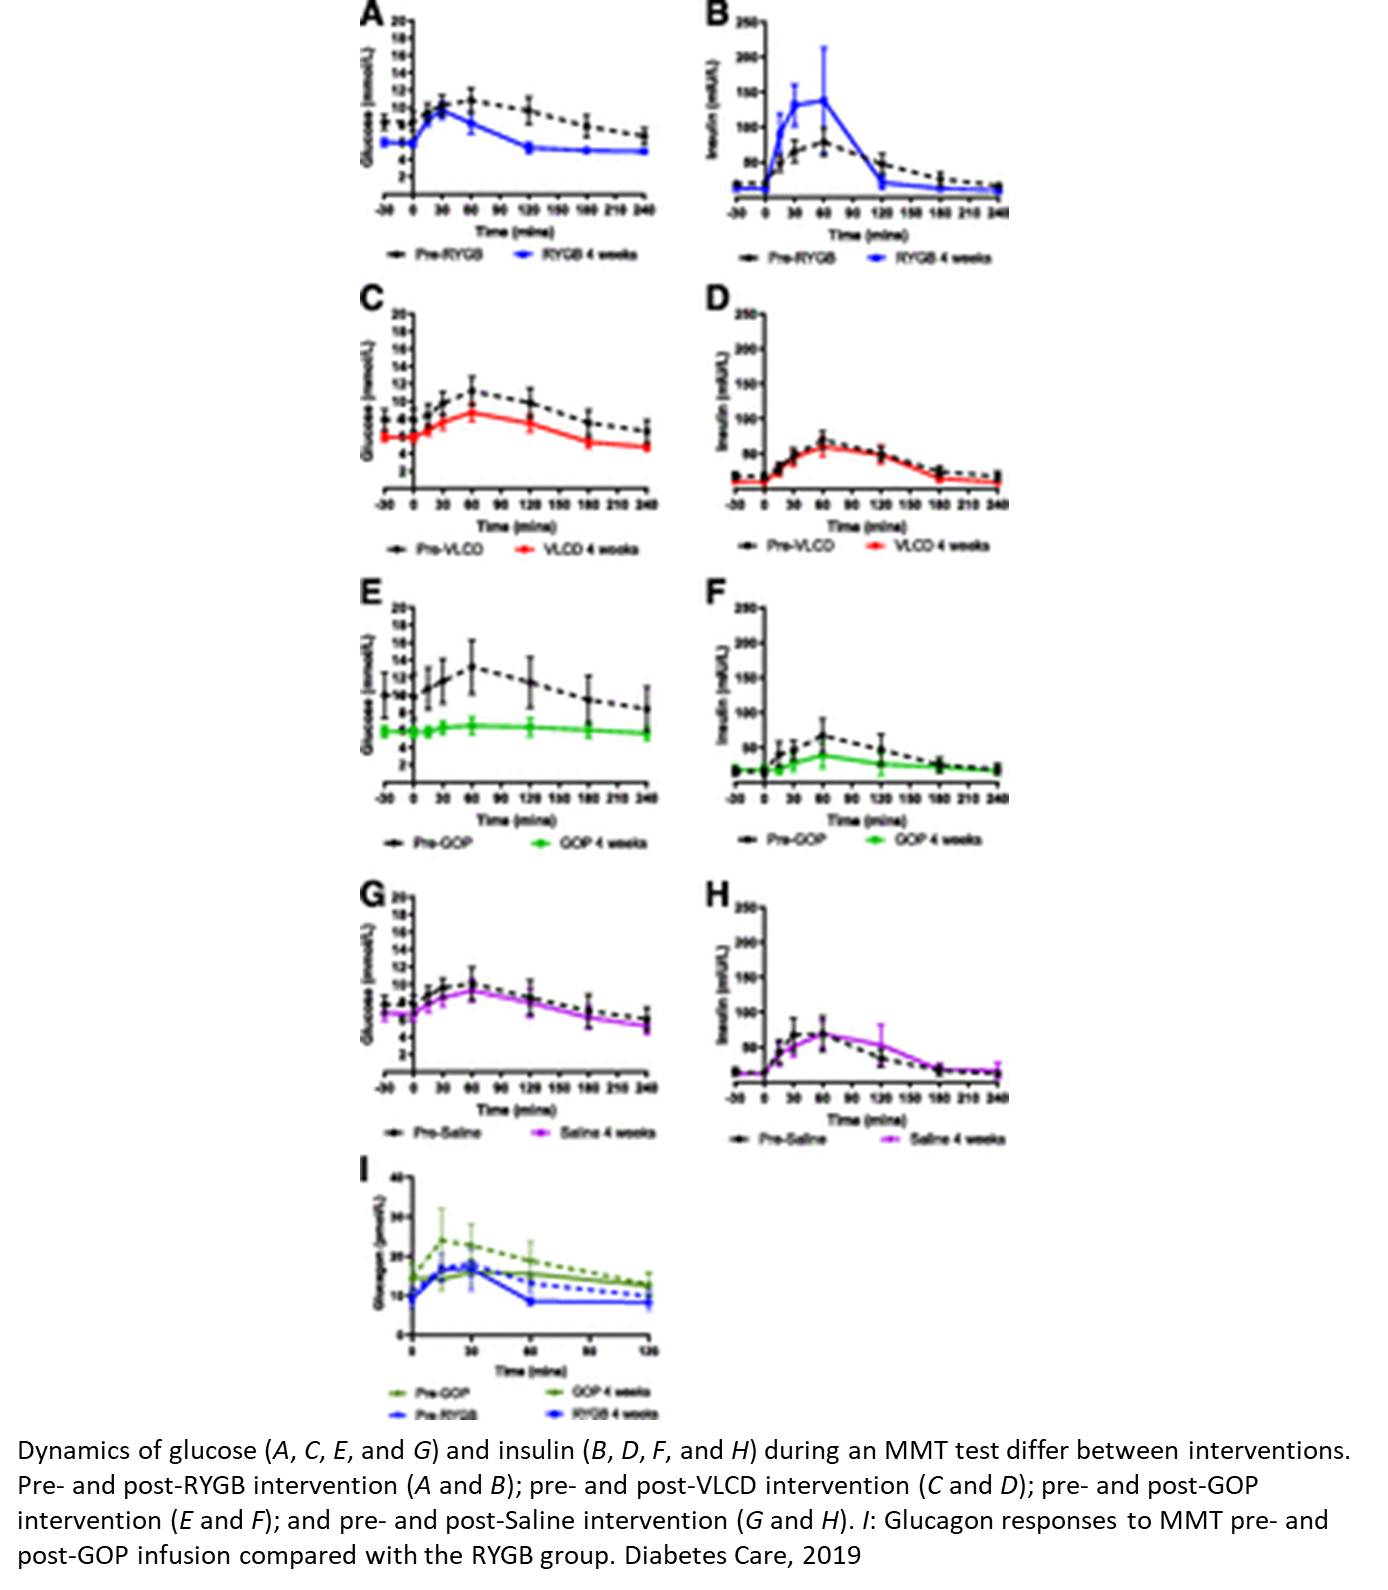 Combined hormone injection aids weight loss in obese patients